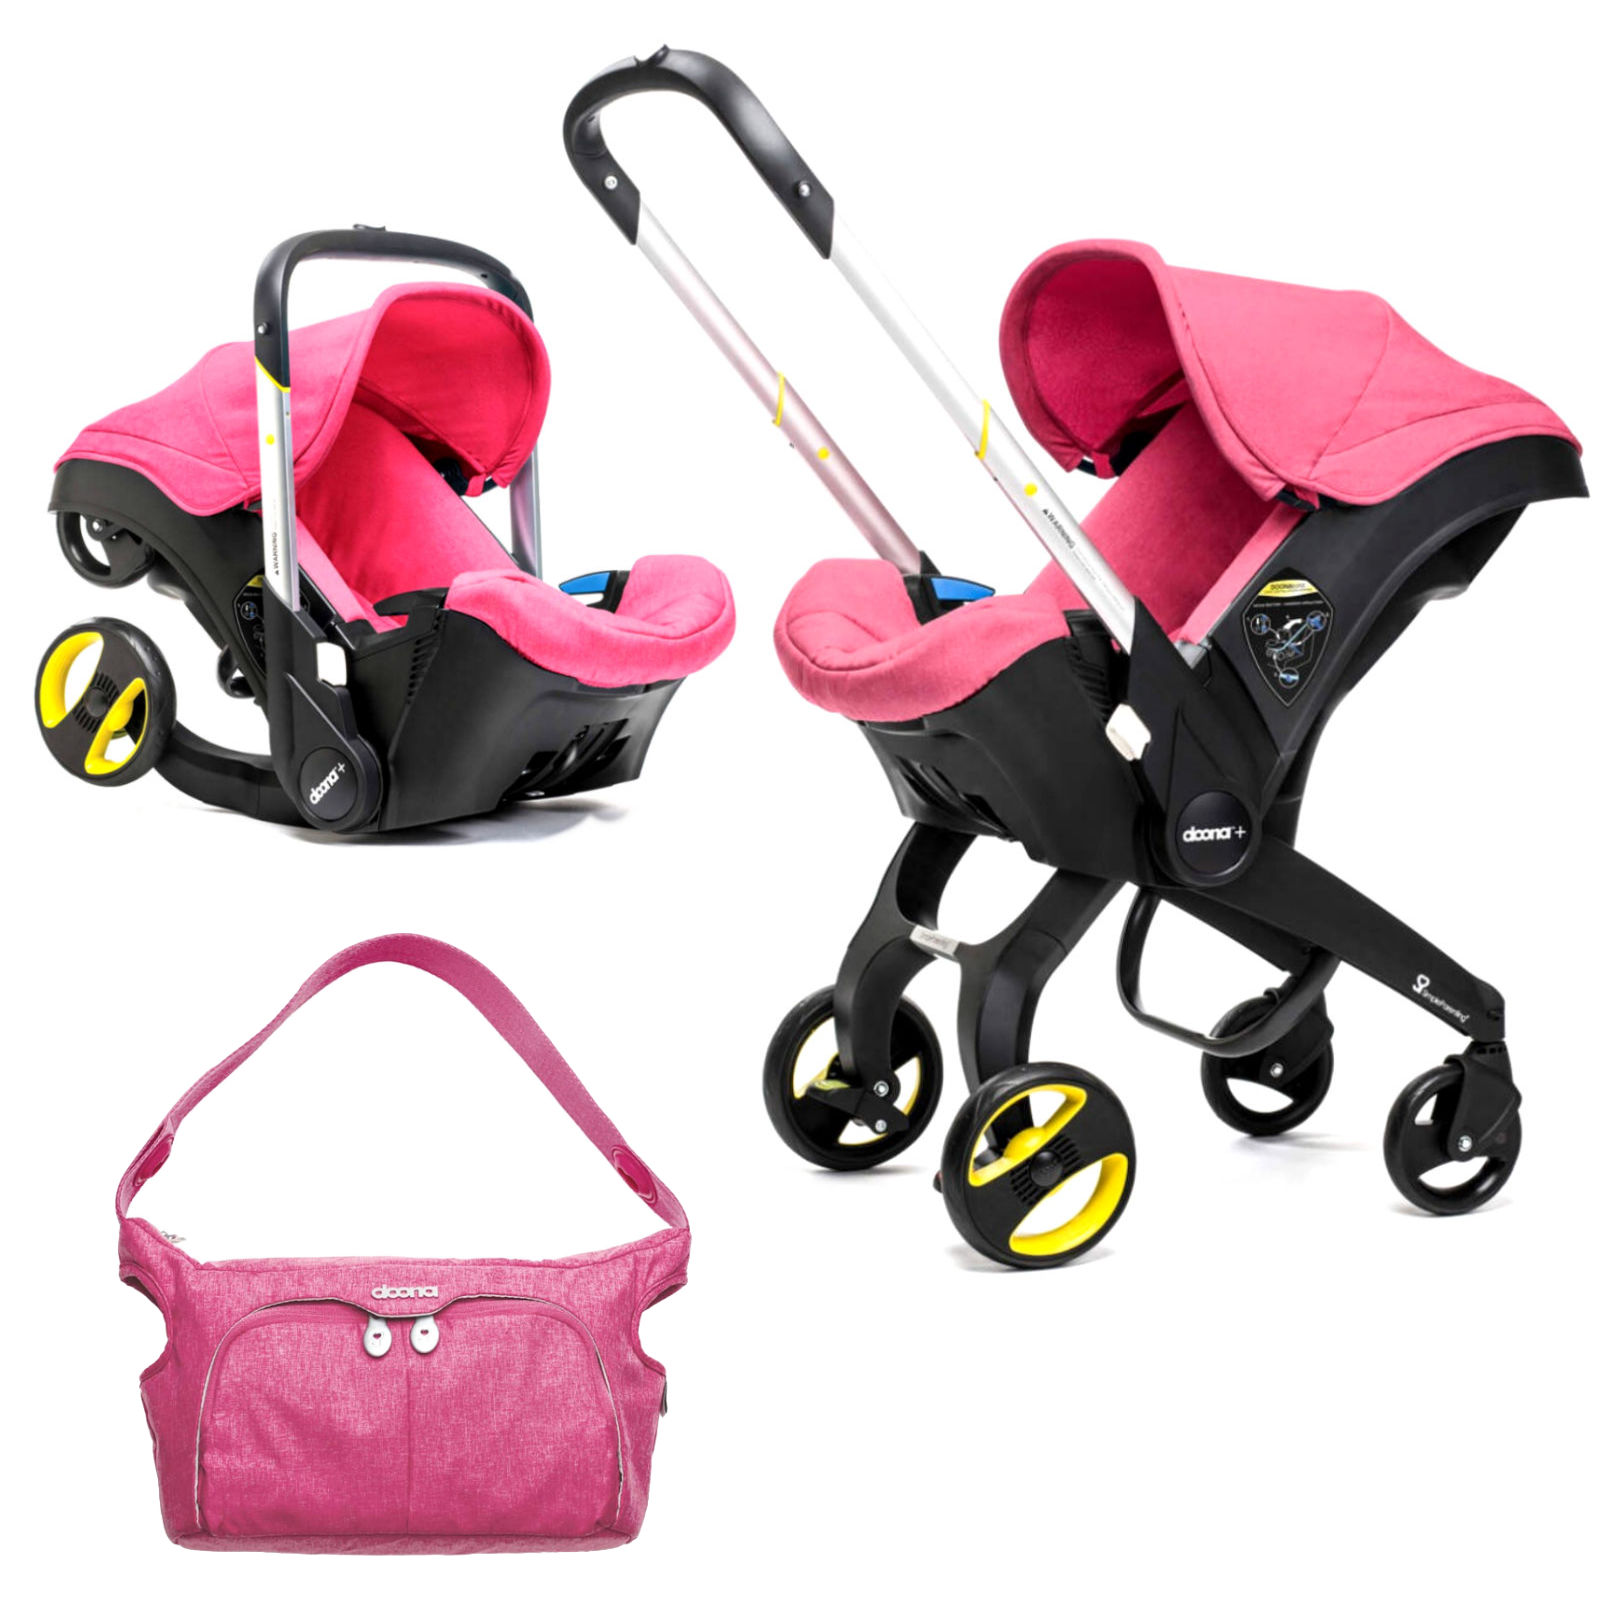 Infant Seat Vs Safety Seat Doona Infant Car Seat Stroller With Changing Bag Sweet Pink